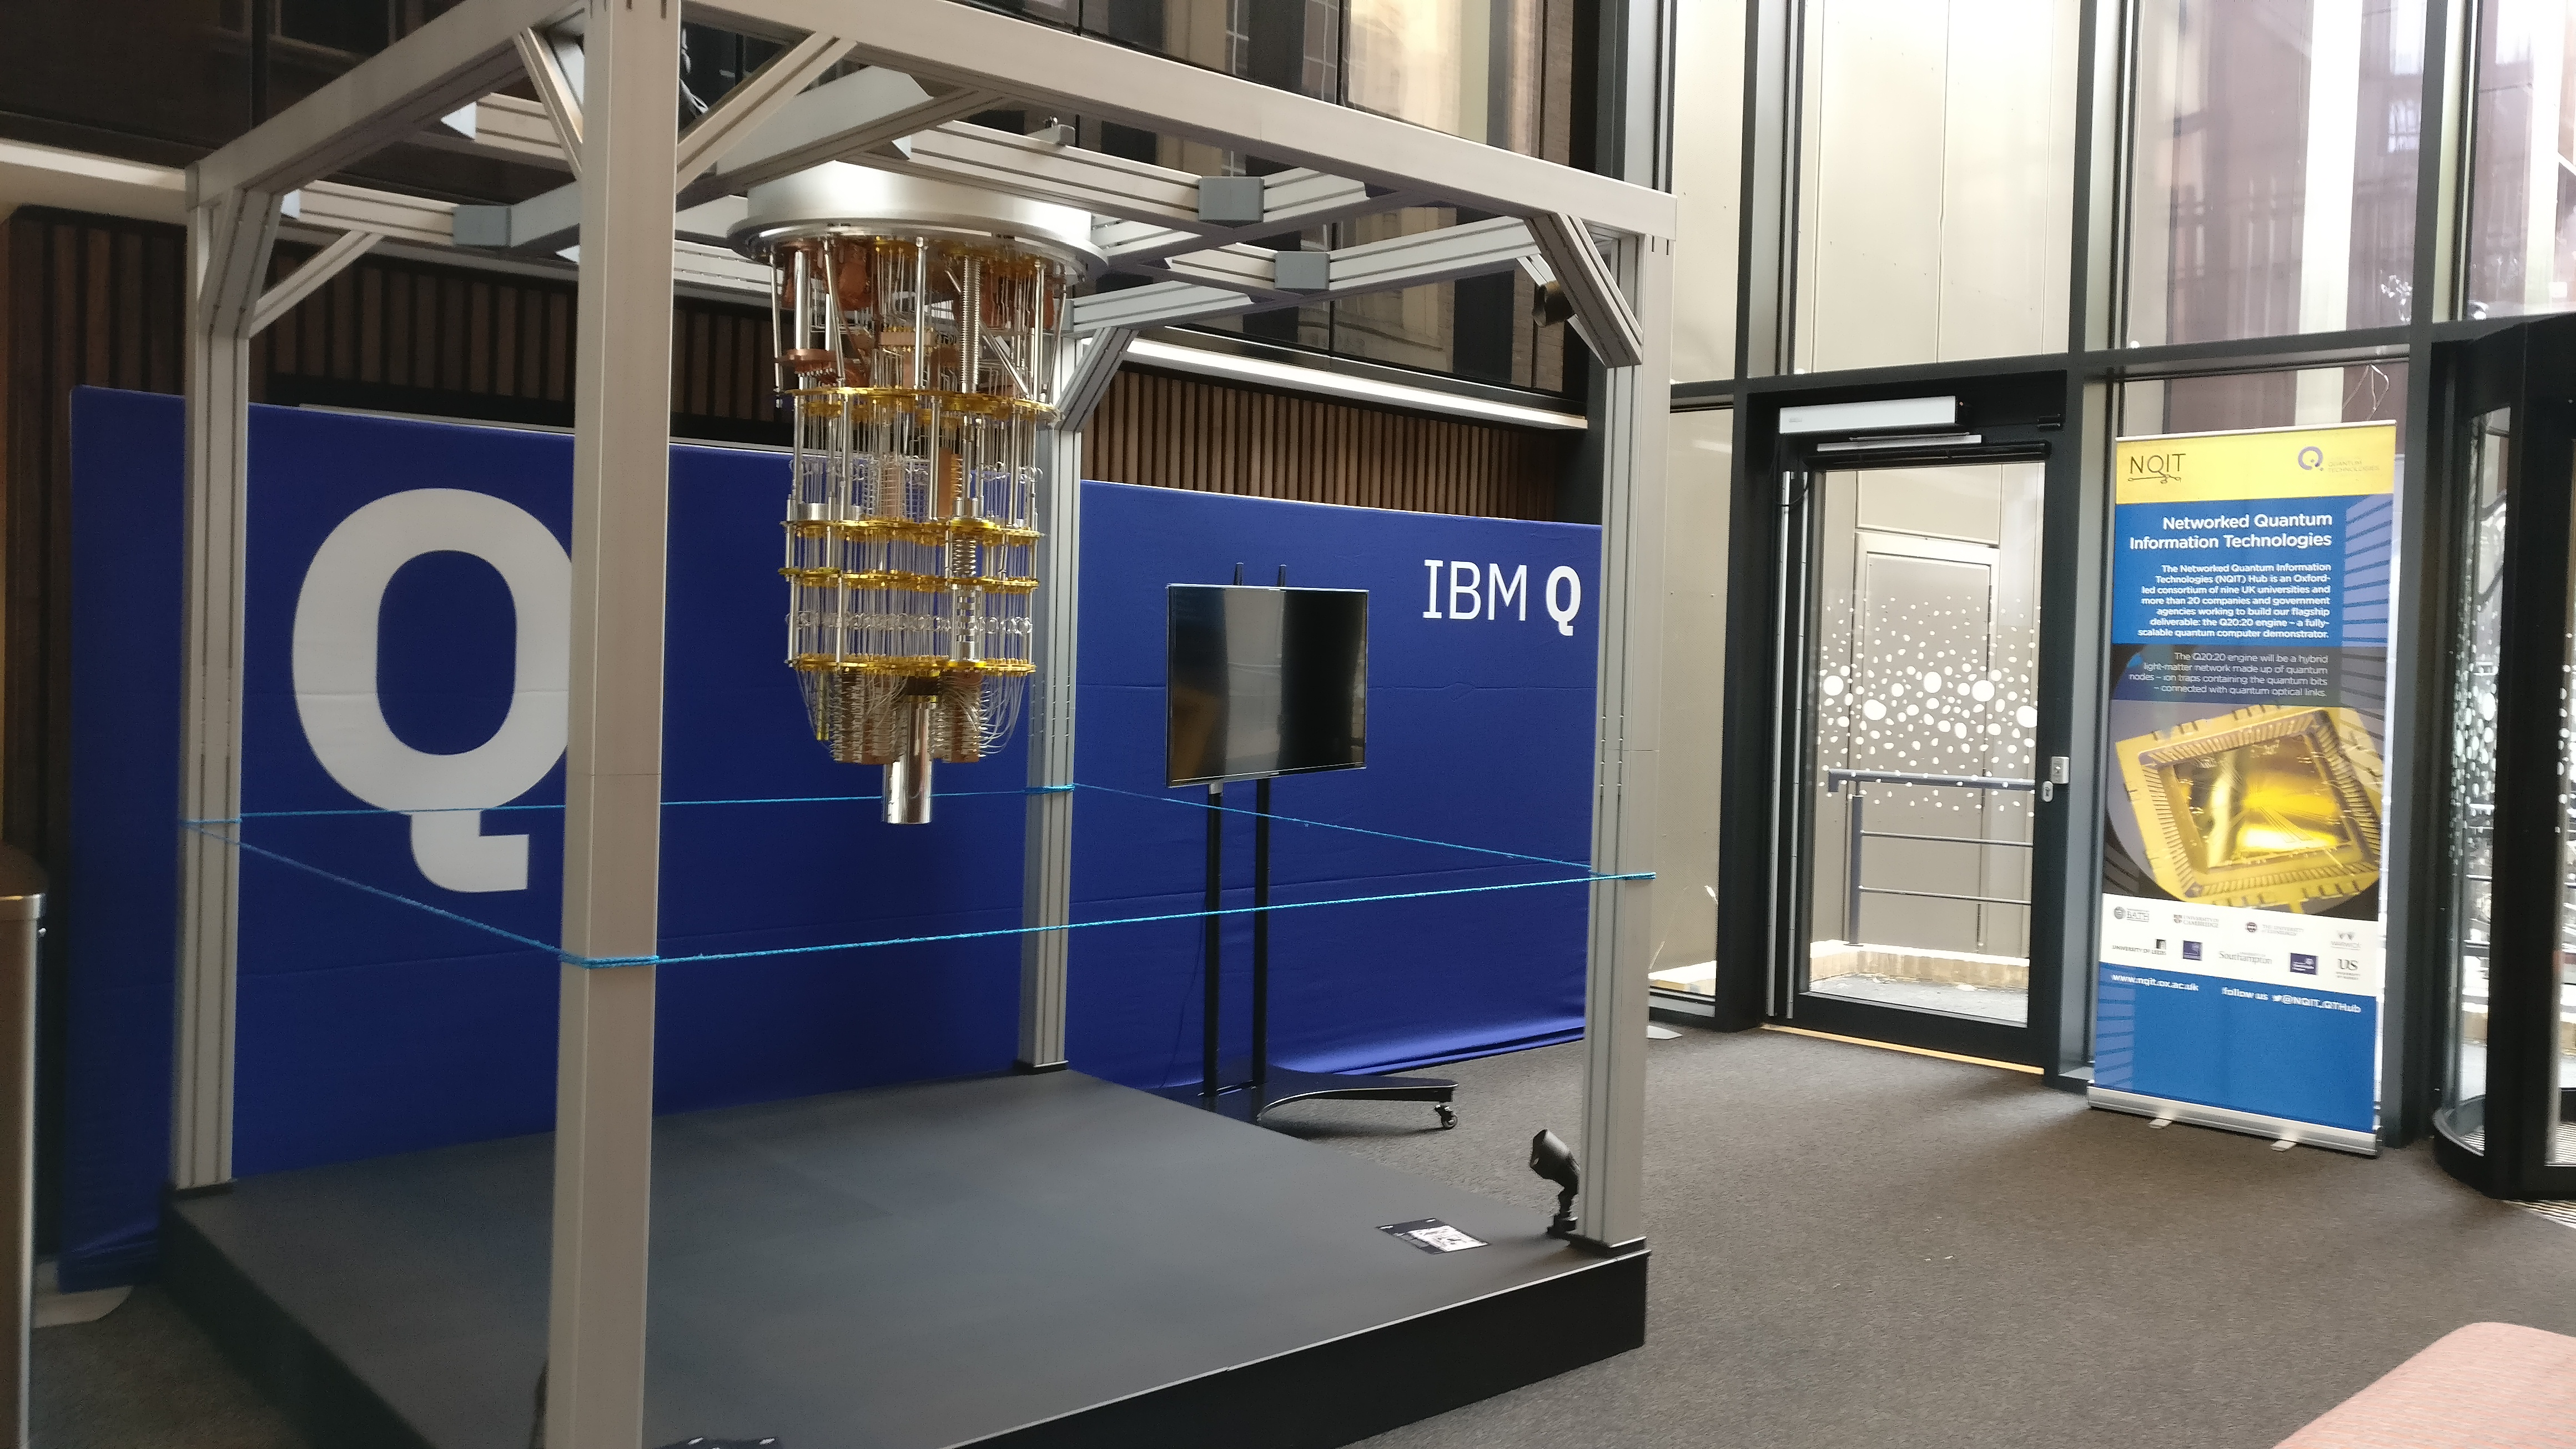 Come and take a look at IBM's Quantum Computer! | NQIT